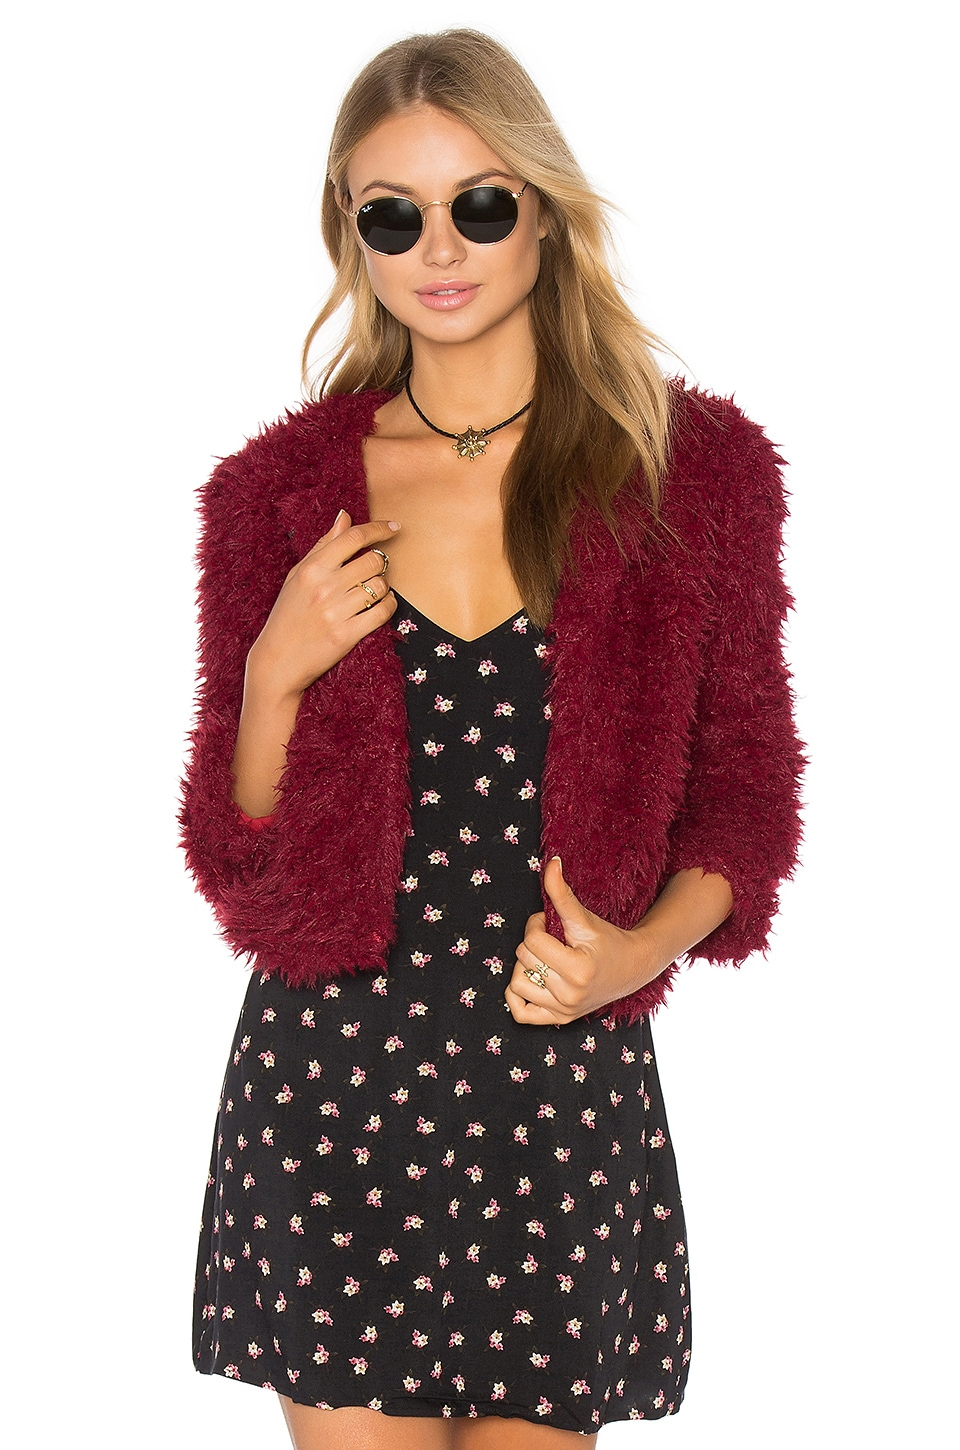 Lucca Couture Rebekah Faux Fur Jacket in Wine